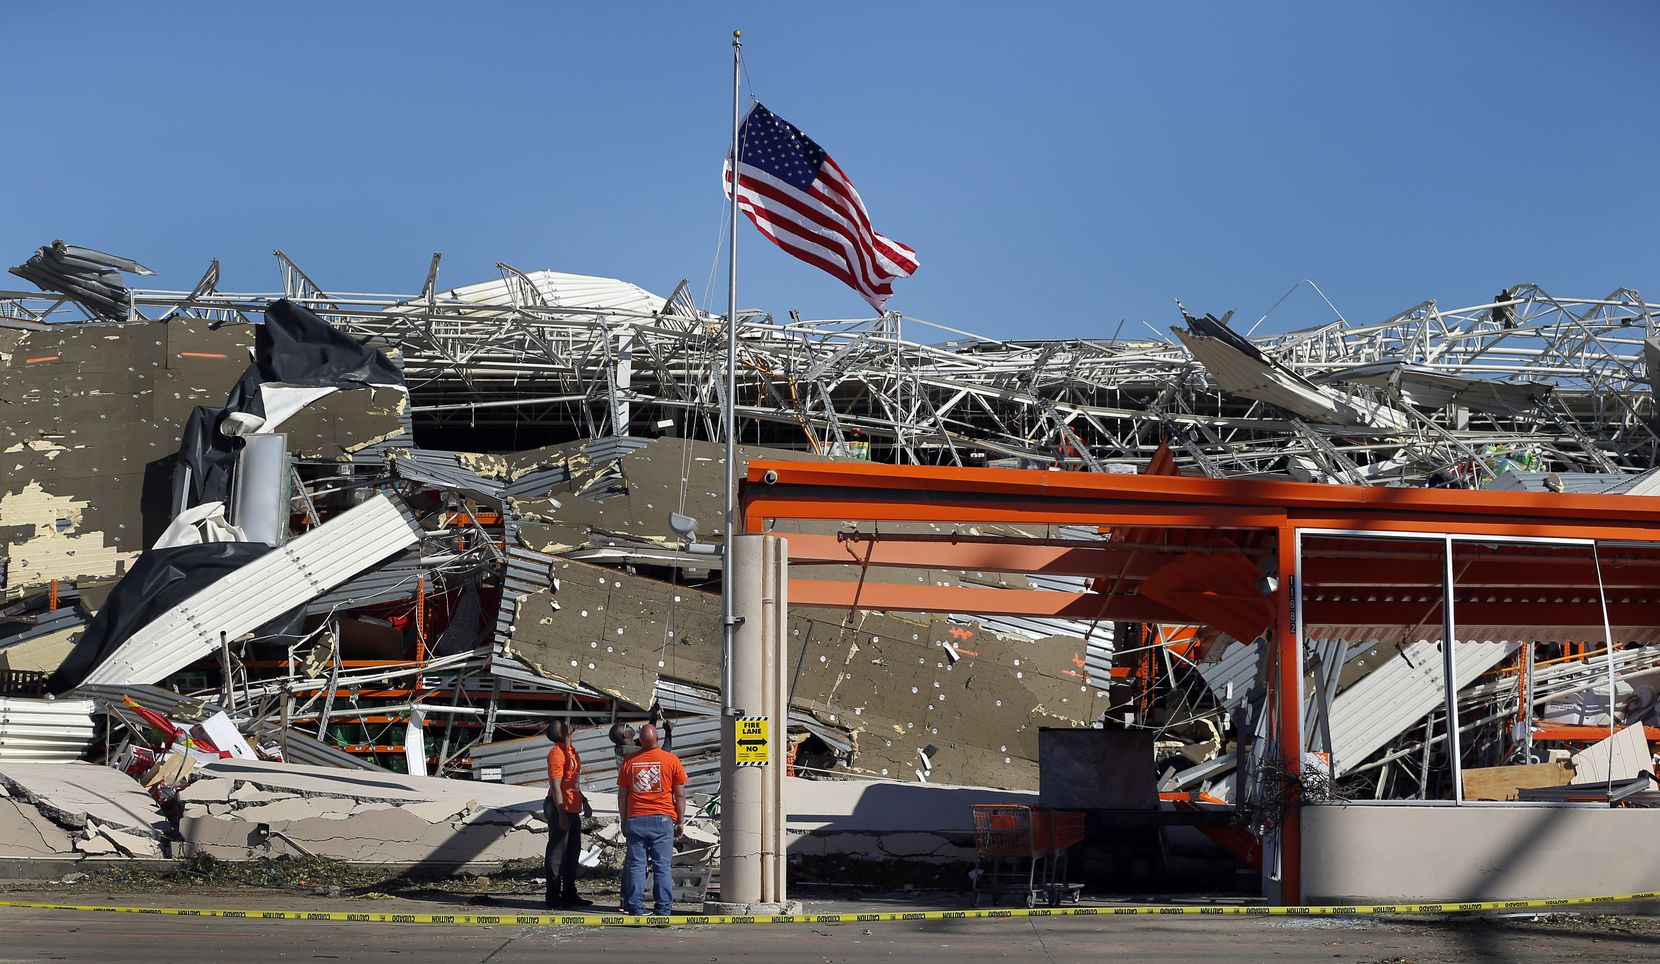 The Home Depot employees A.J. Kobena (center) raises the U.S. flag on the slightly bent flagpole outside the destroyed store on N. Central Expressway in Dallas, Monday, October 21, 2019. Jining him were fellow employees Jonathan Shields and Jordan Jasper. A tornado tore through the entire neighborhood knocking down trees and ripping roofs from homes.